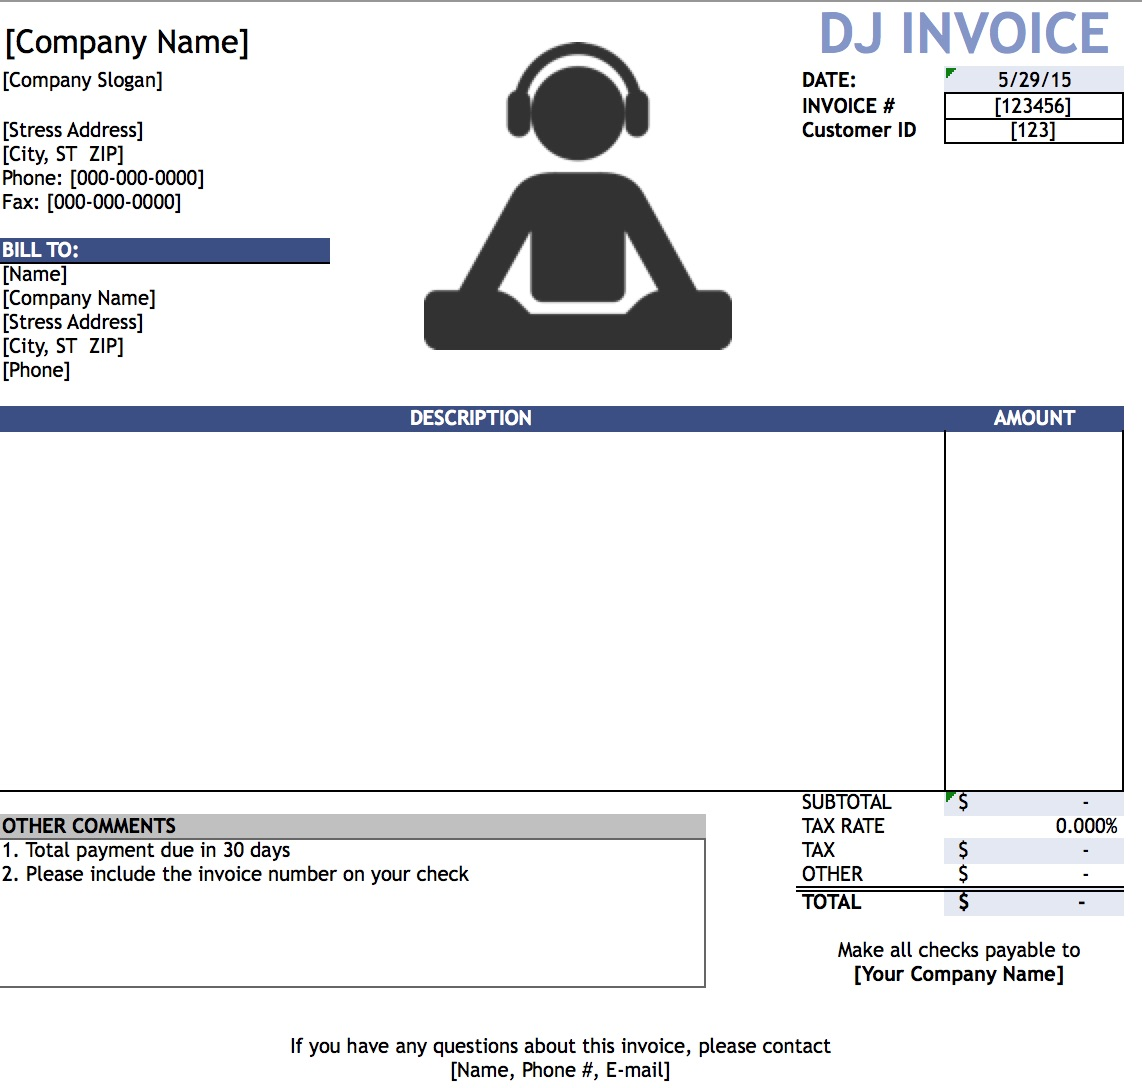 Free DJ Disc Jockey Invoice Template Excel PDF Word Doc - Free word document invoice template for service business